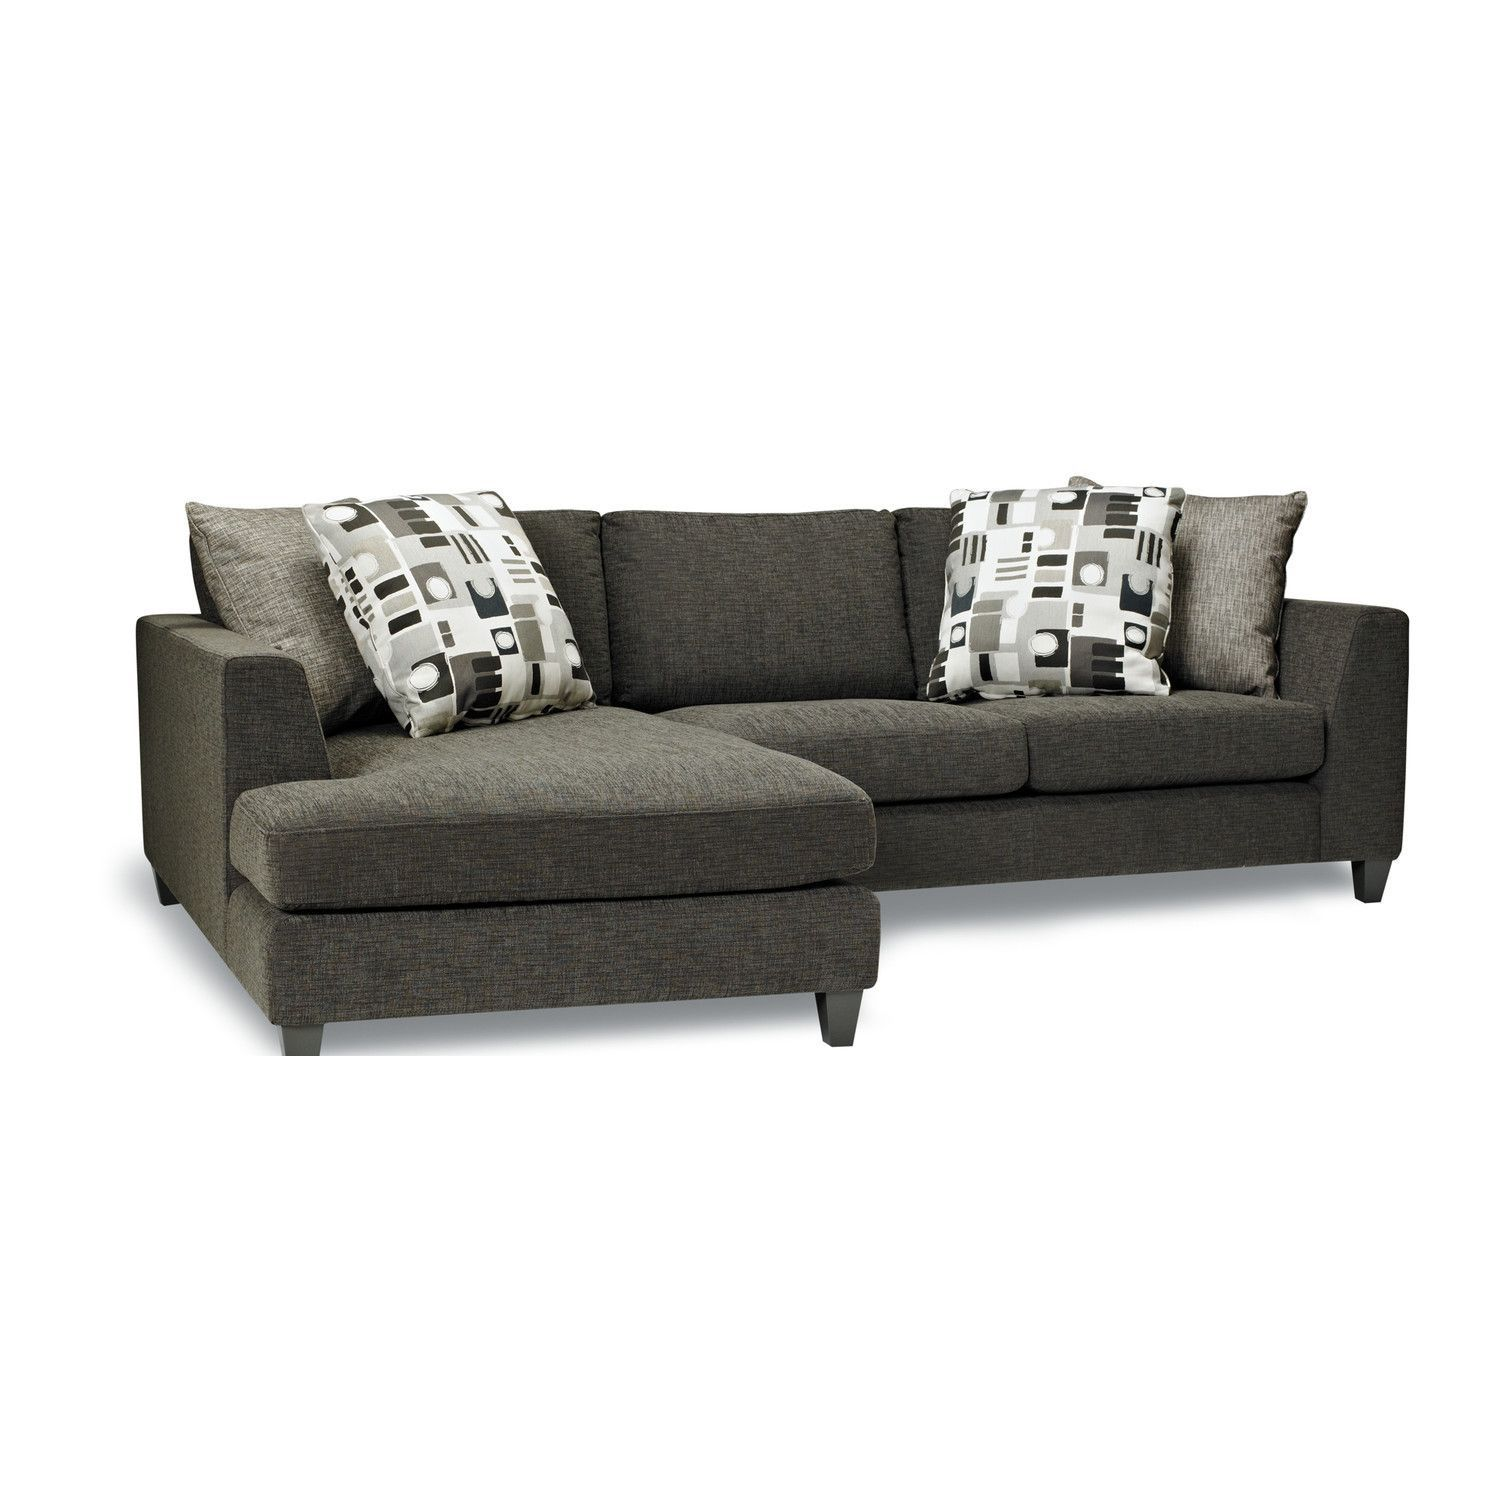 Sofas To Go Jayce Sectional Sofa Muse Shadow Fabric